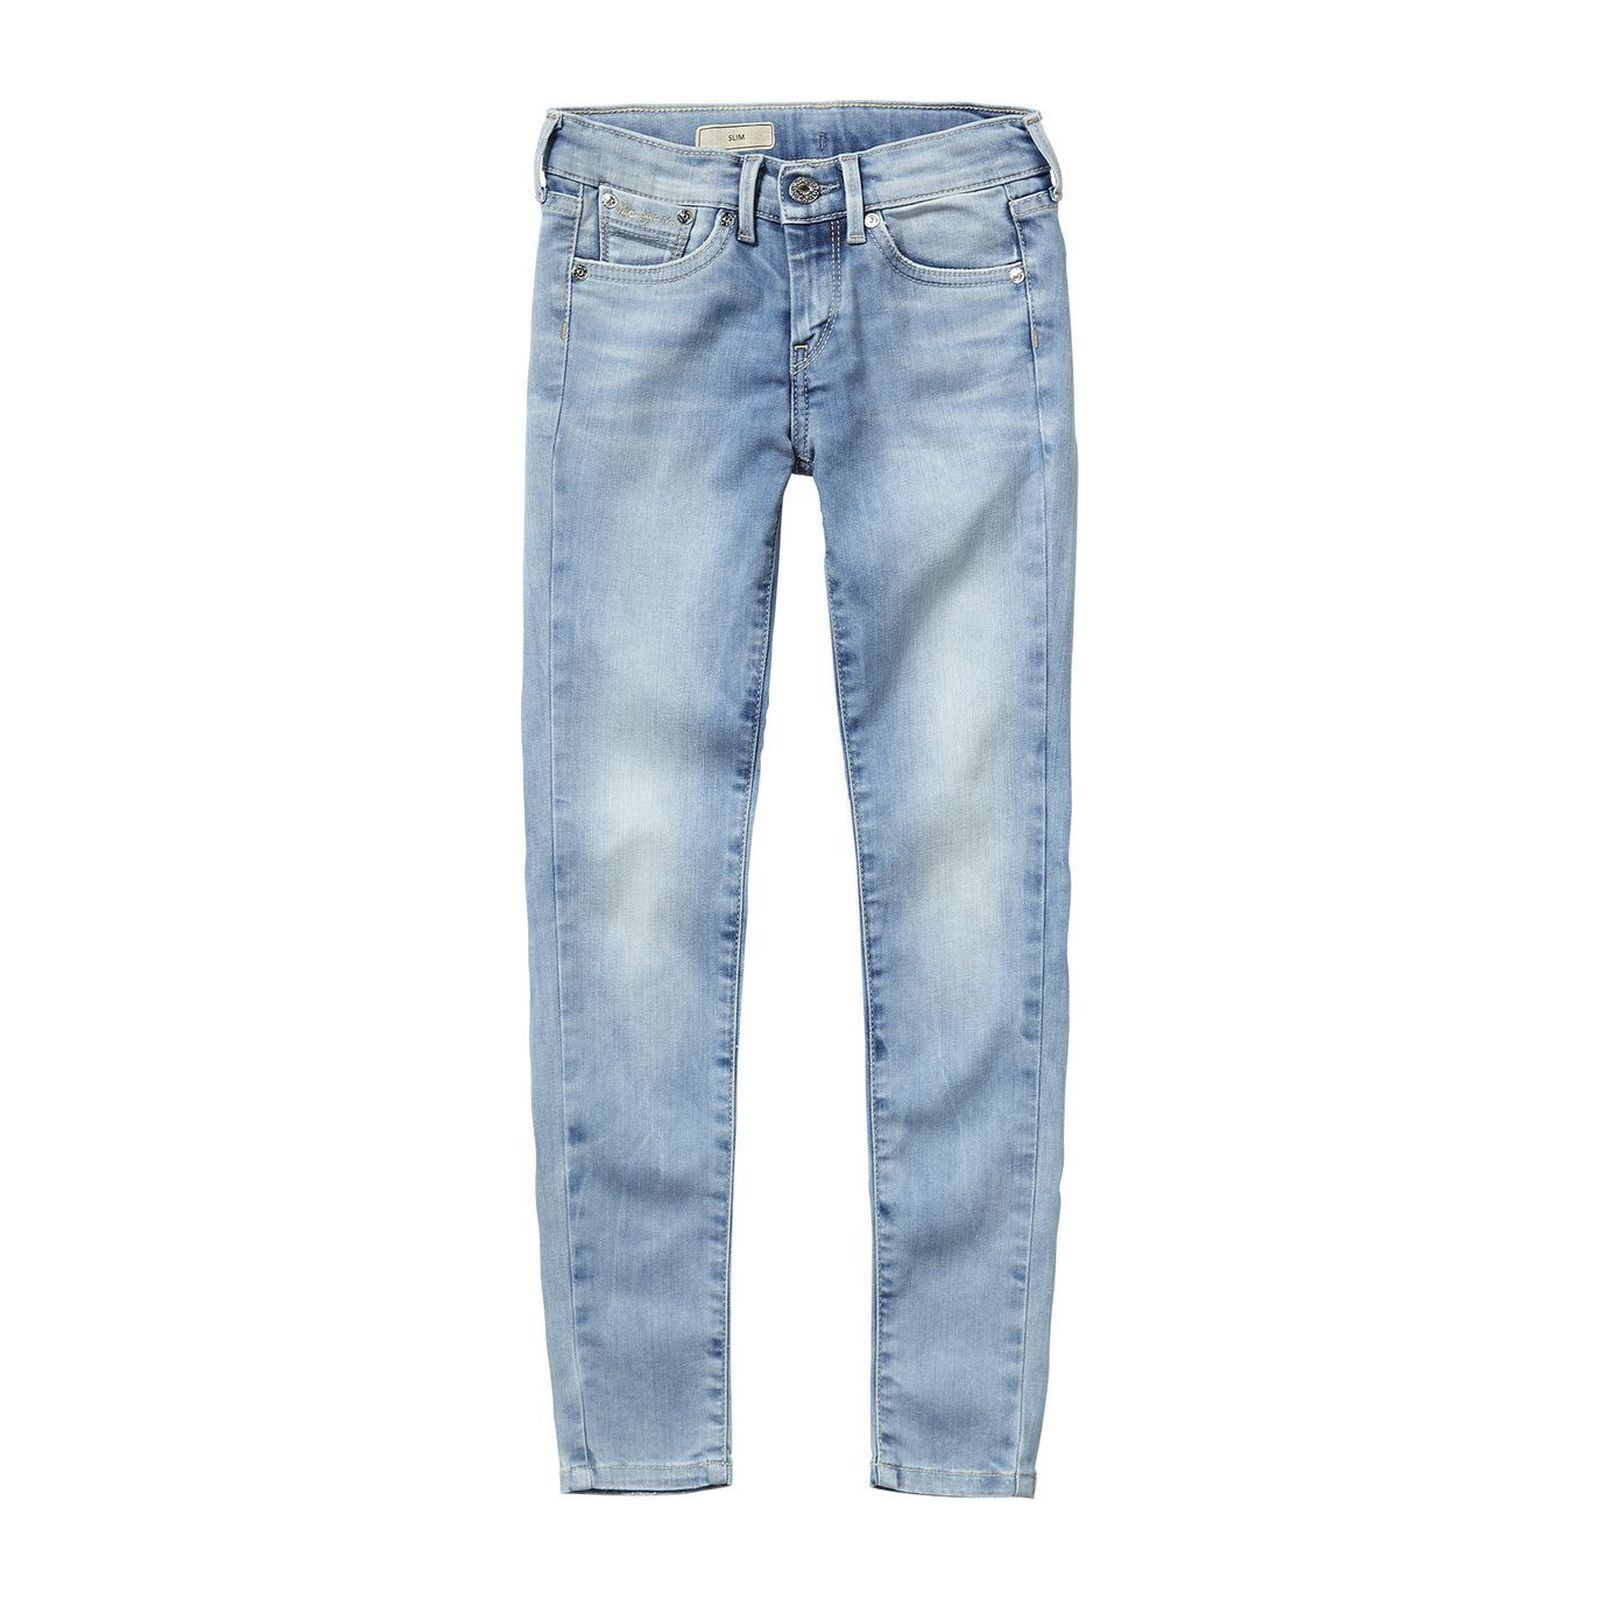 Pepe Jeans London Scarlette teen - Jean slim - denim bleu   BrandAlley 12e65ed8107c